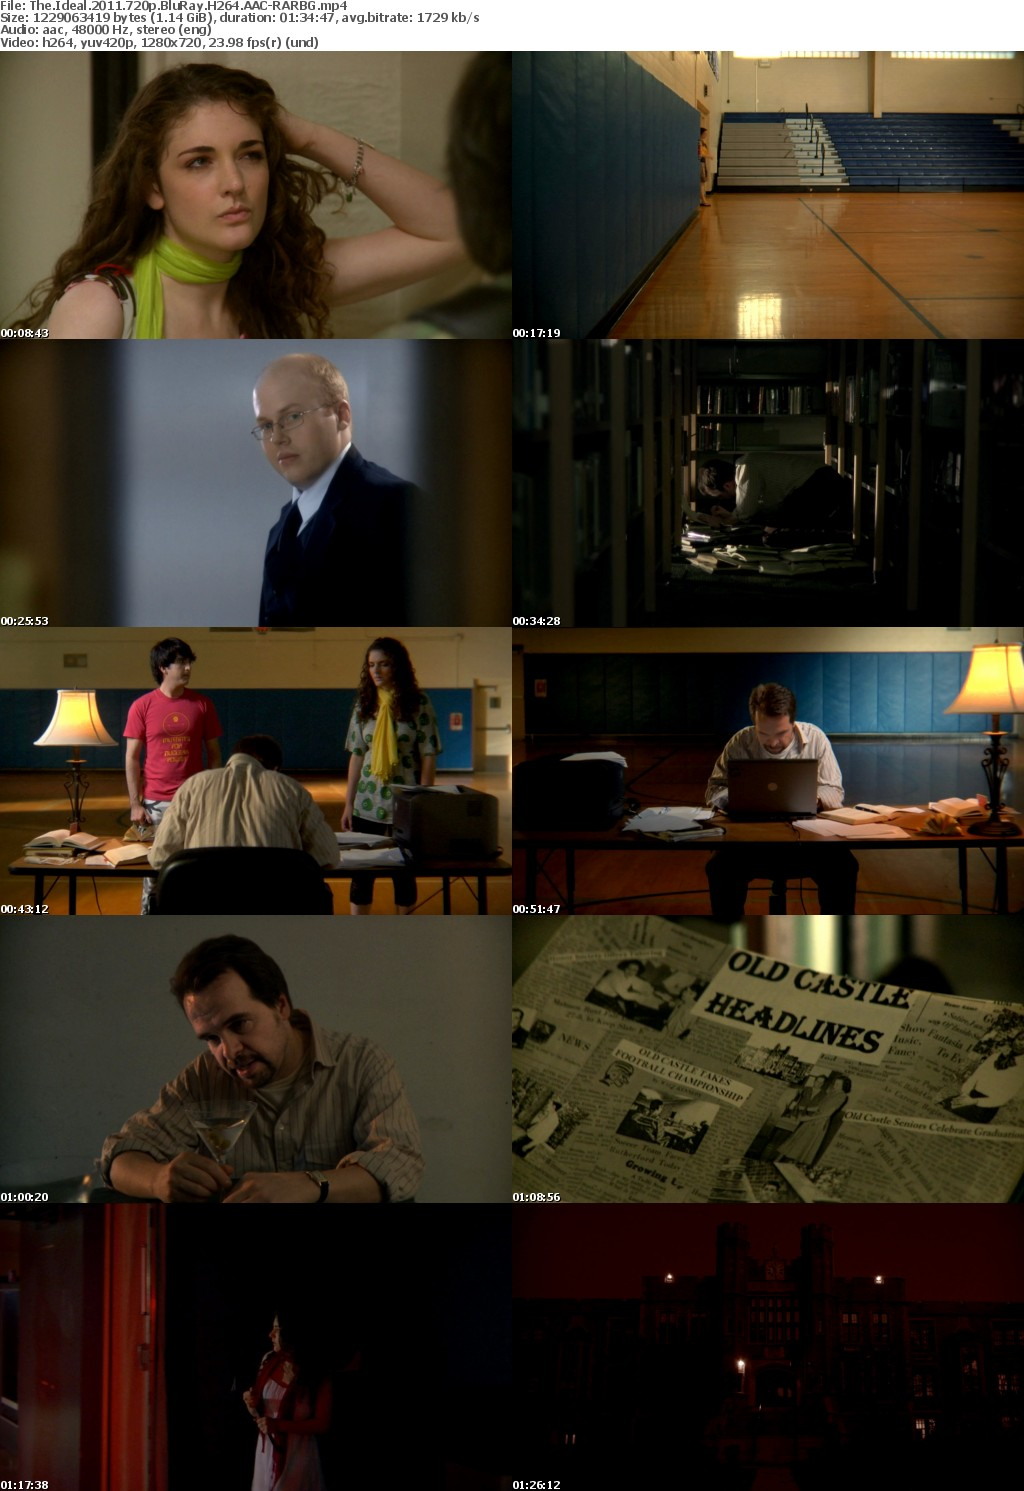 The Ideal (2011) 720p BluRay H264 AAC-RARBG